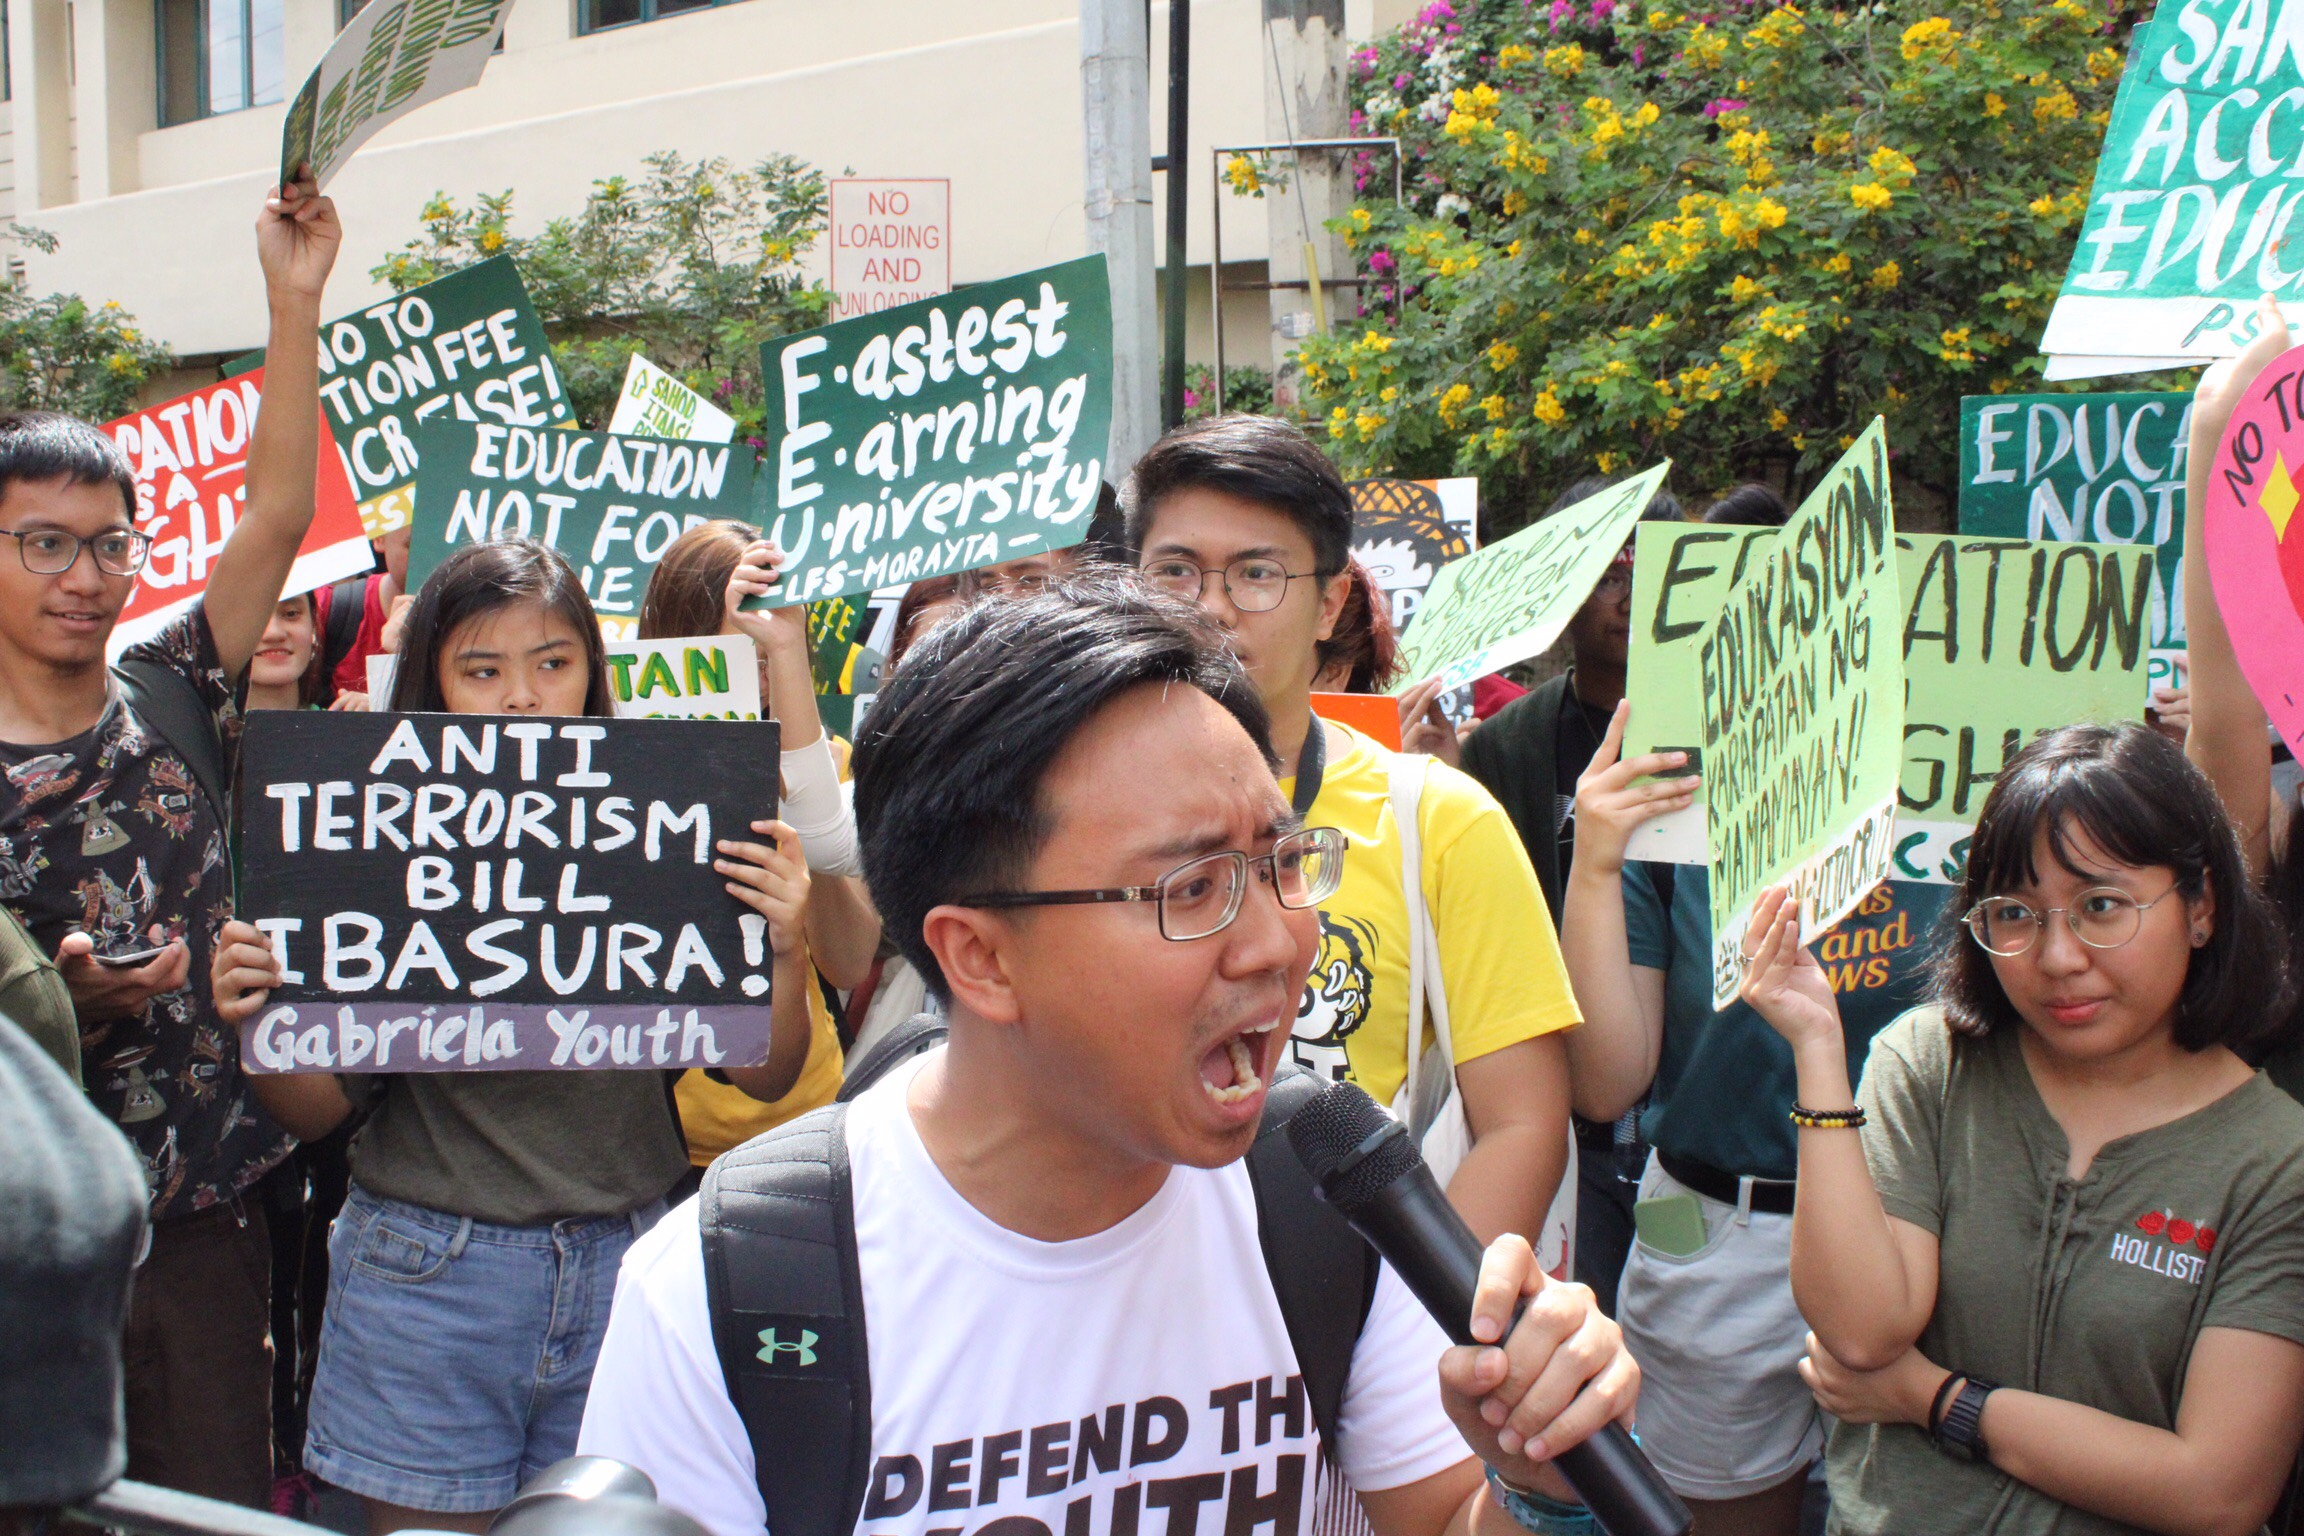 DEFEND. National Union of Students of the Philippines (NUSP) President Raoul Manuel raise his concerns for the proposed tuition fee hike in front of Far Eastern University (FEU) gate. Photo by Kristine Vega